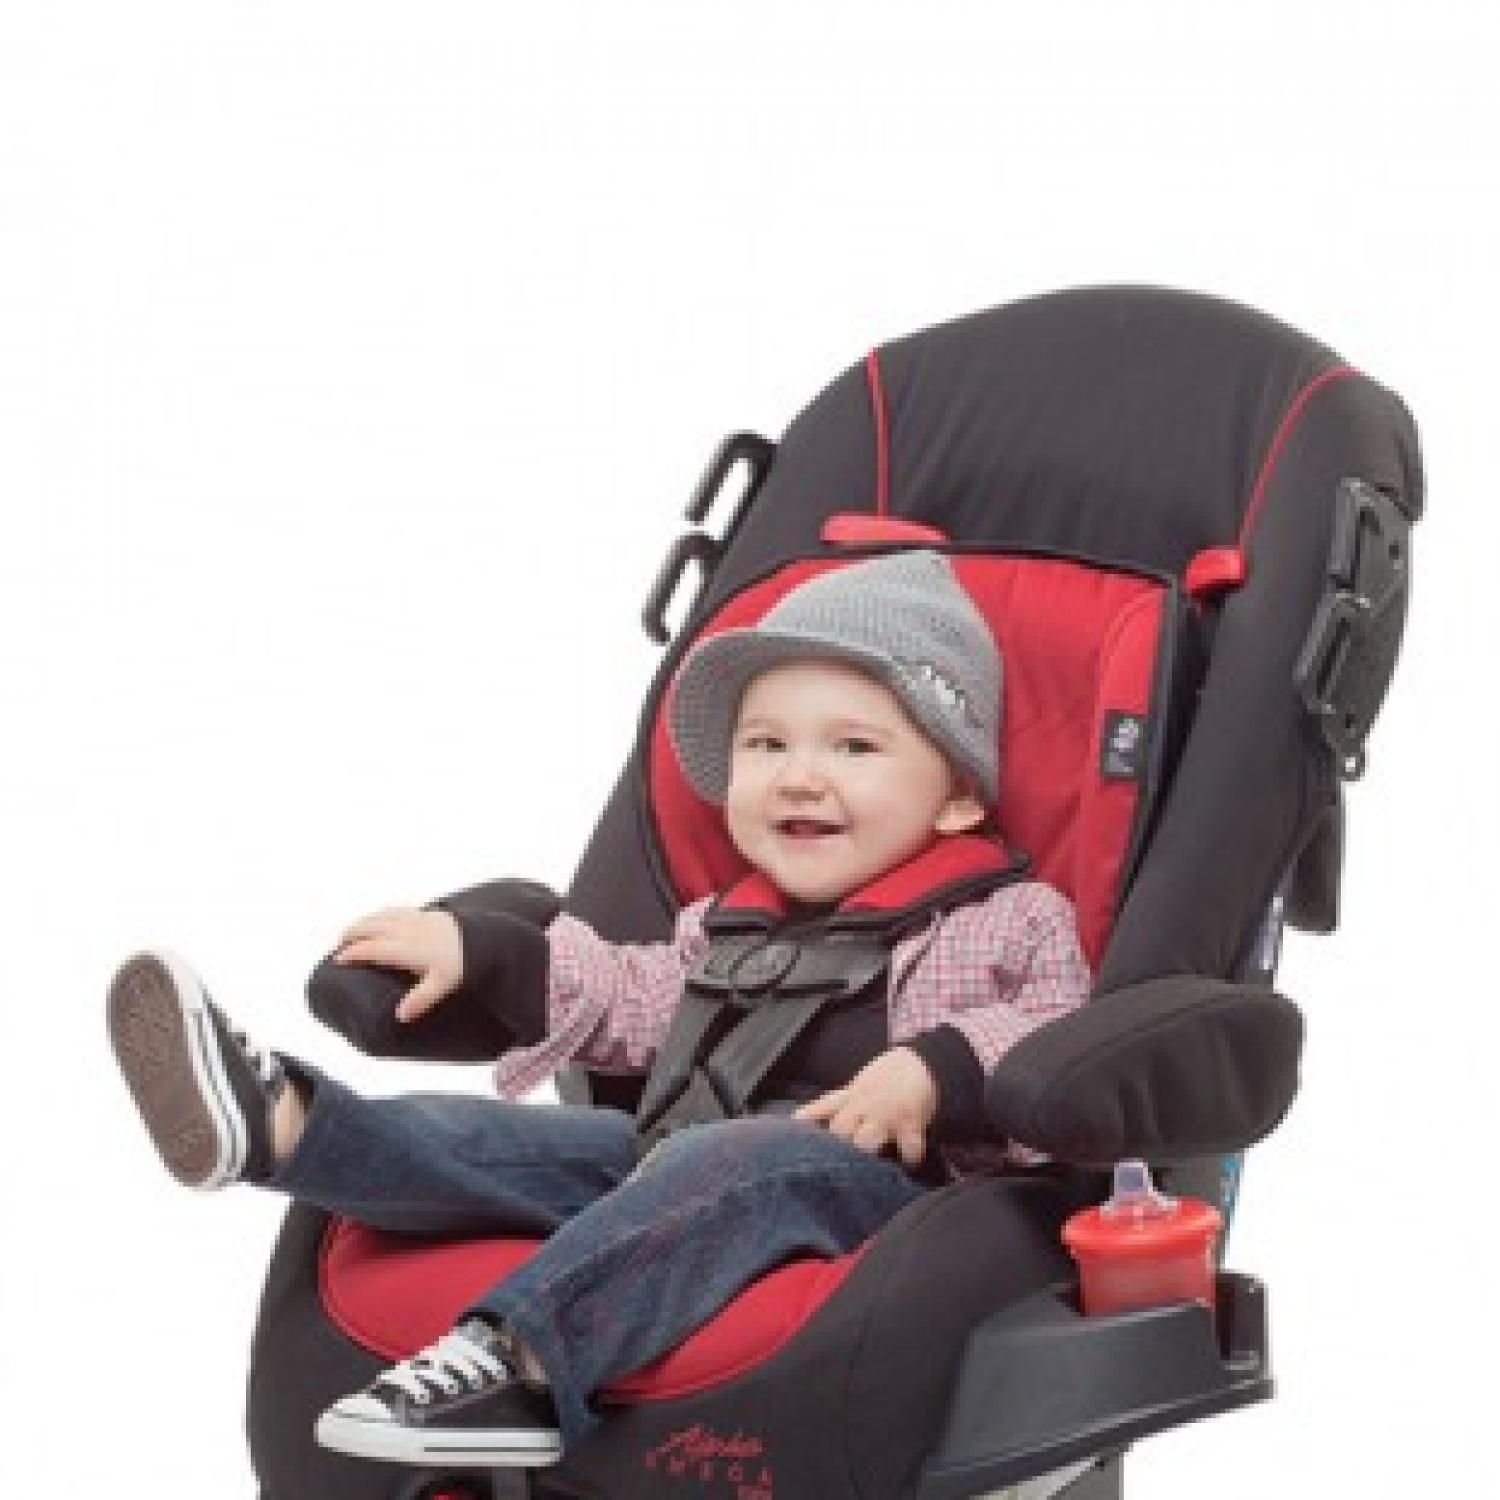 New Infant and Convertible Car Seats | Parenting